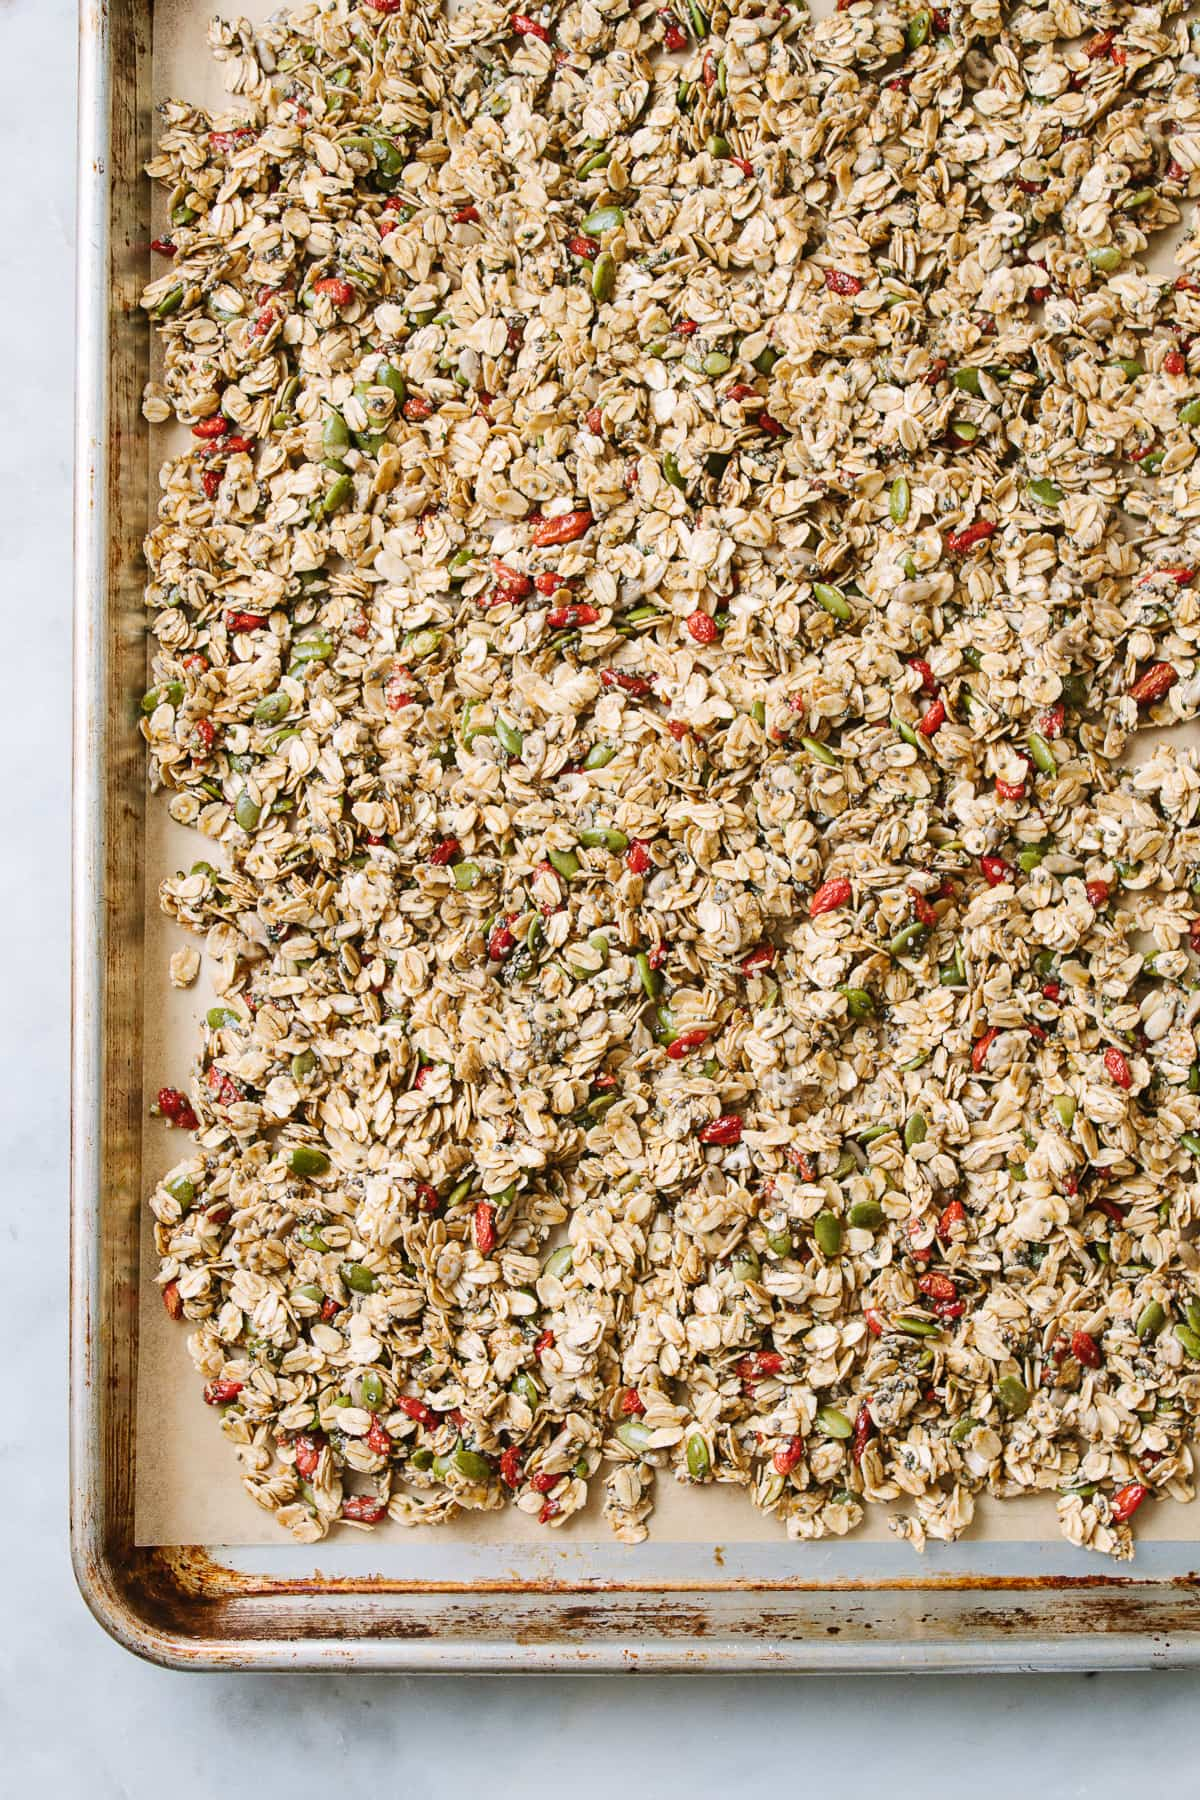 top down view healthy granola layered on a baking sheet before going into the oven.